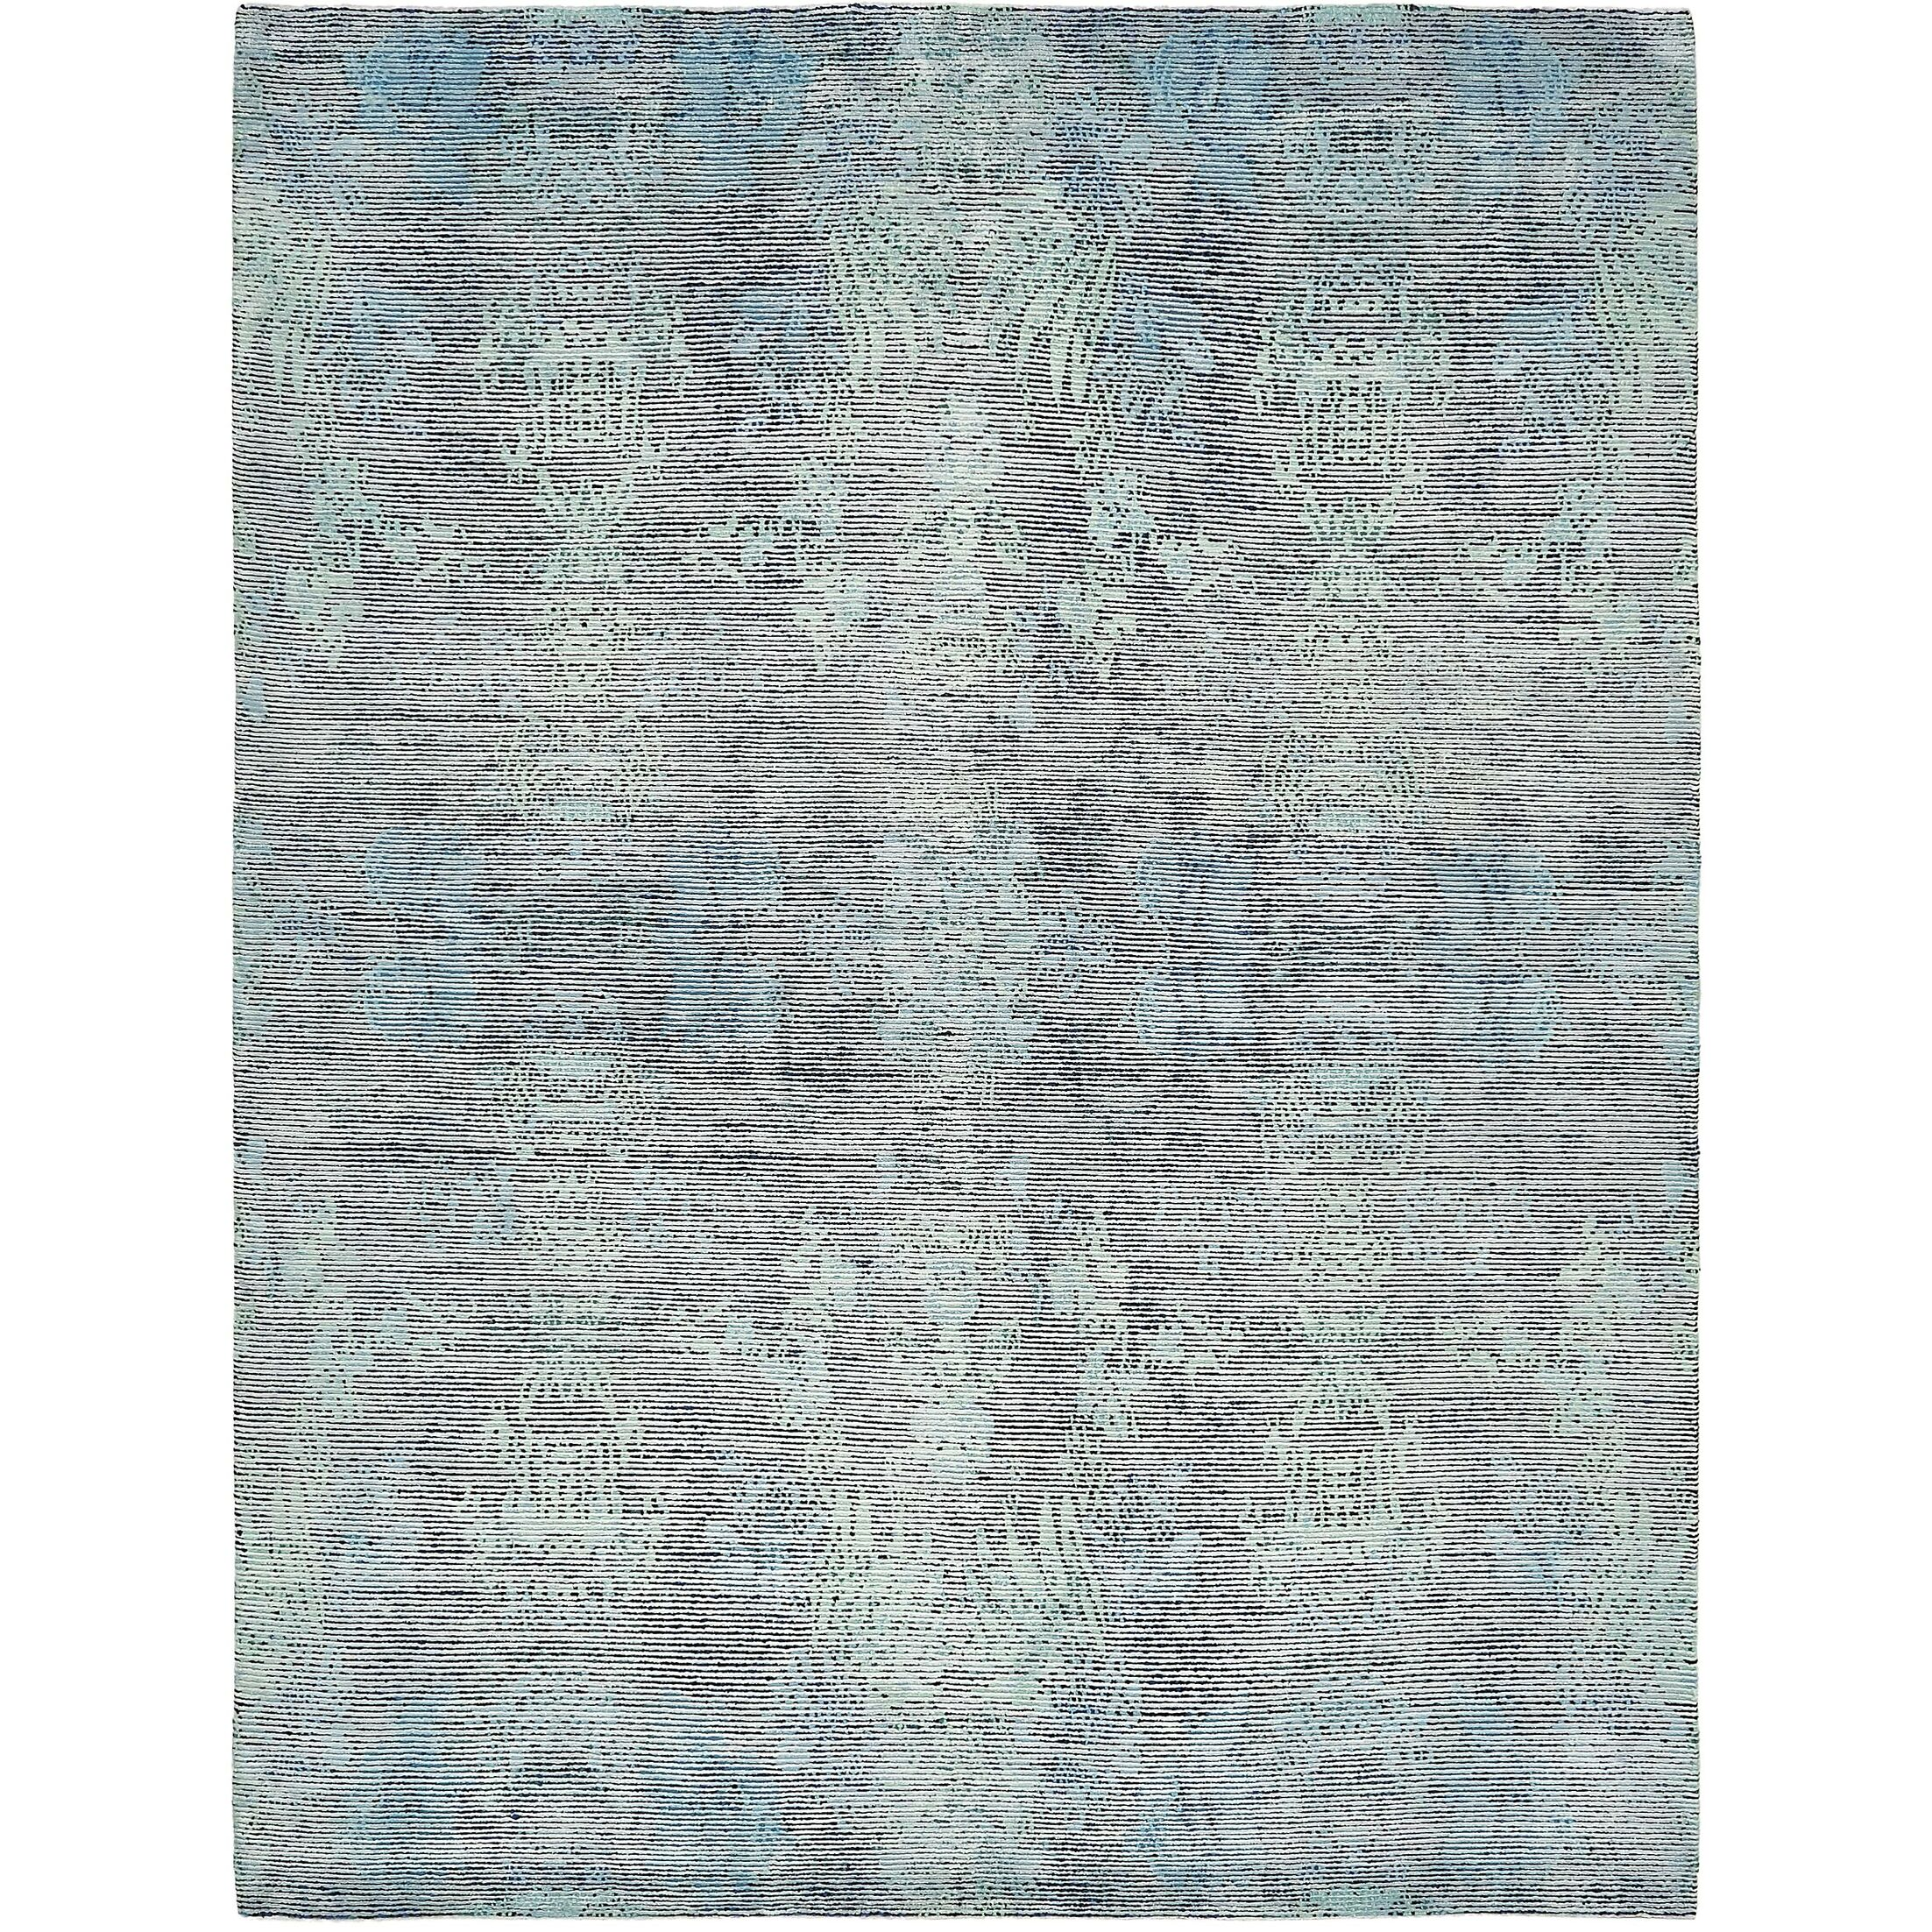 One-of-a-Kind Easton Hand-Knotted Wool/Silk Blue/Gray Area Rug